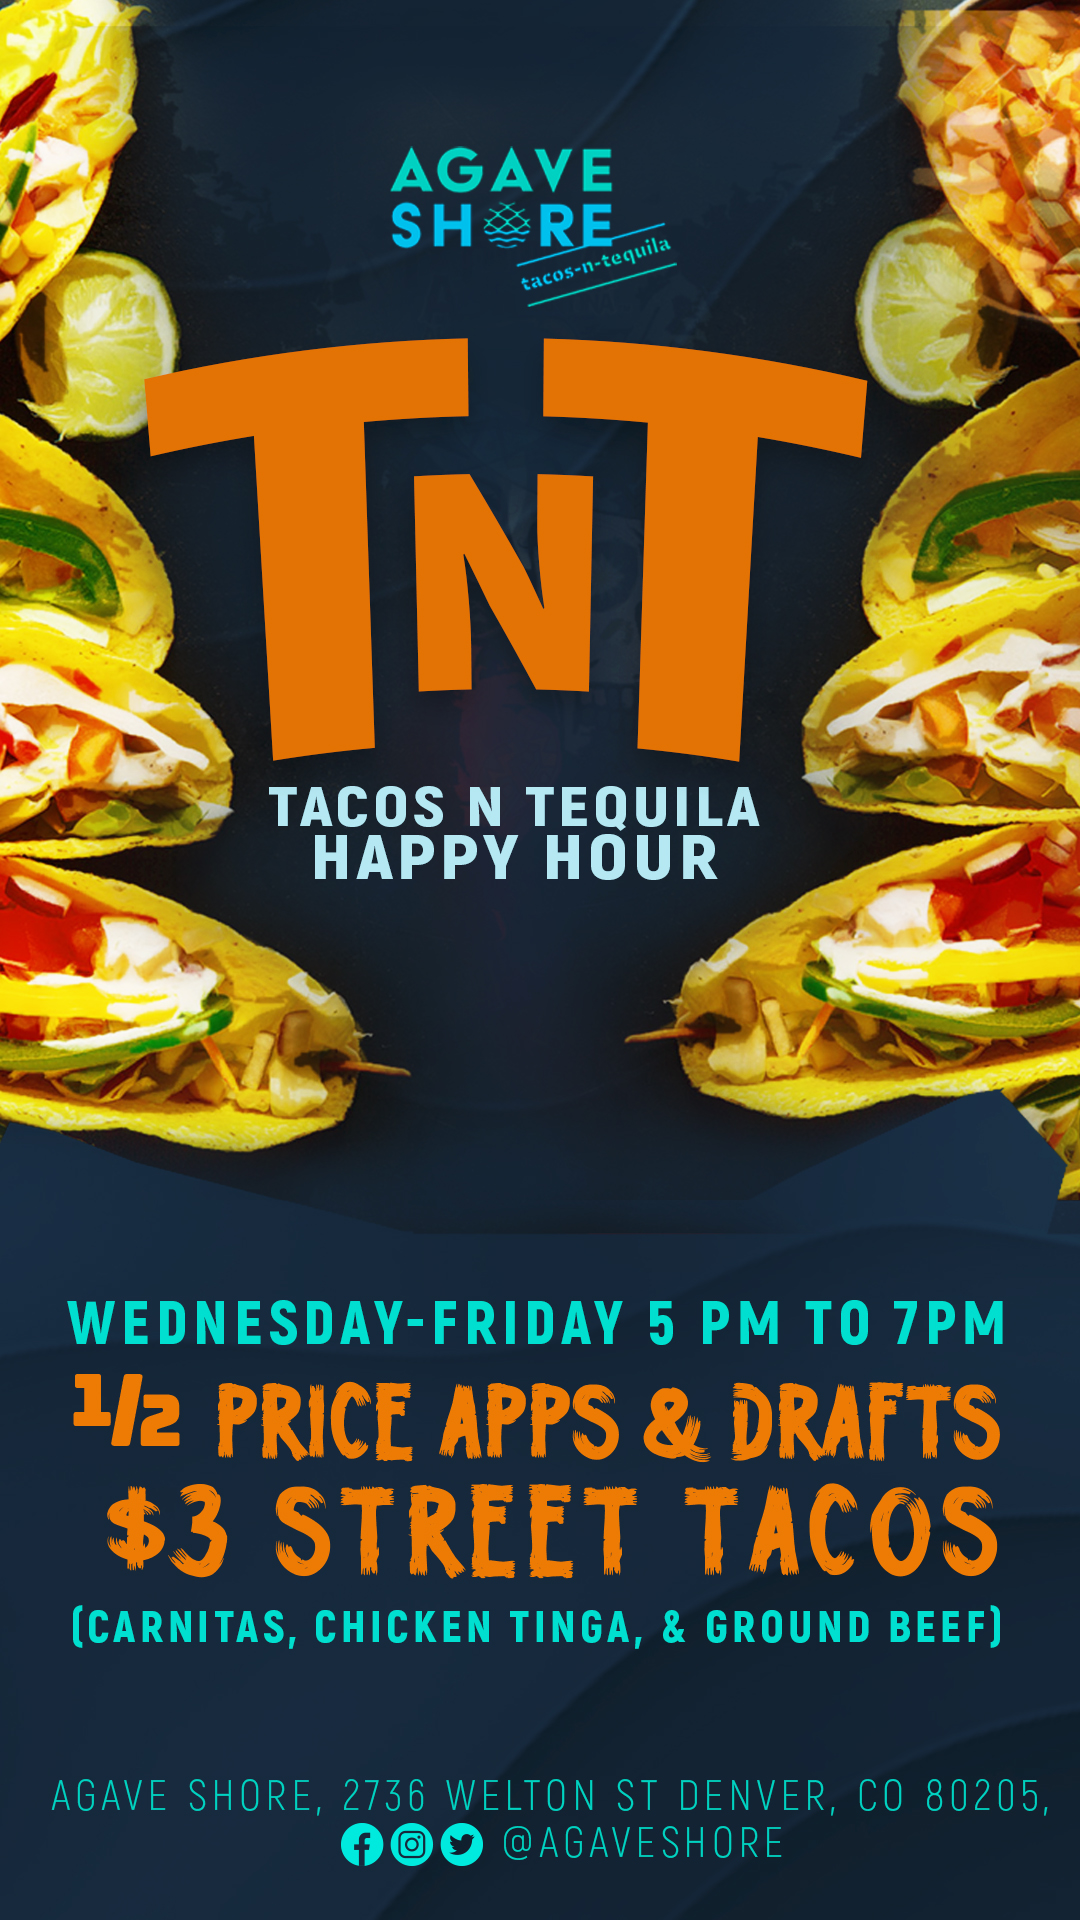 TNT Tacos and tequila happy hour  Wednesday thru Friday 5pm to 7pm half price appetizers and draft beers.  $3 street tacos (Carnitas, chicken Tinga, ground beef)